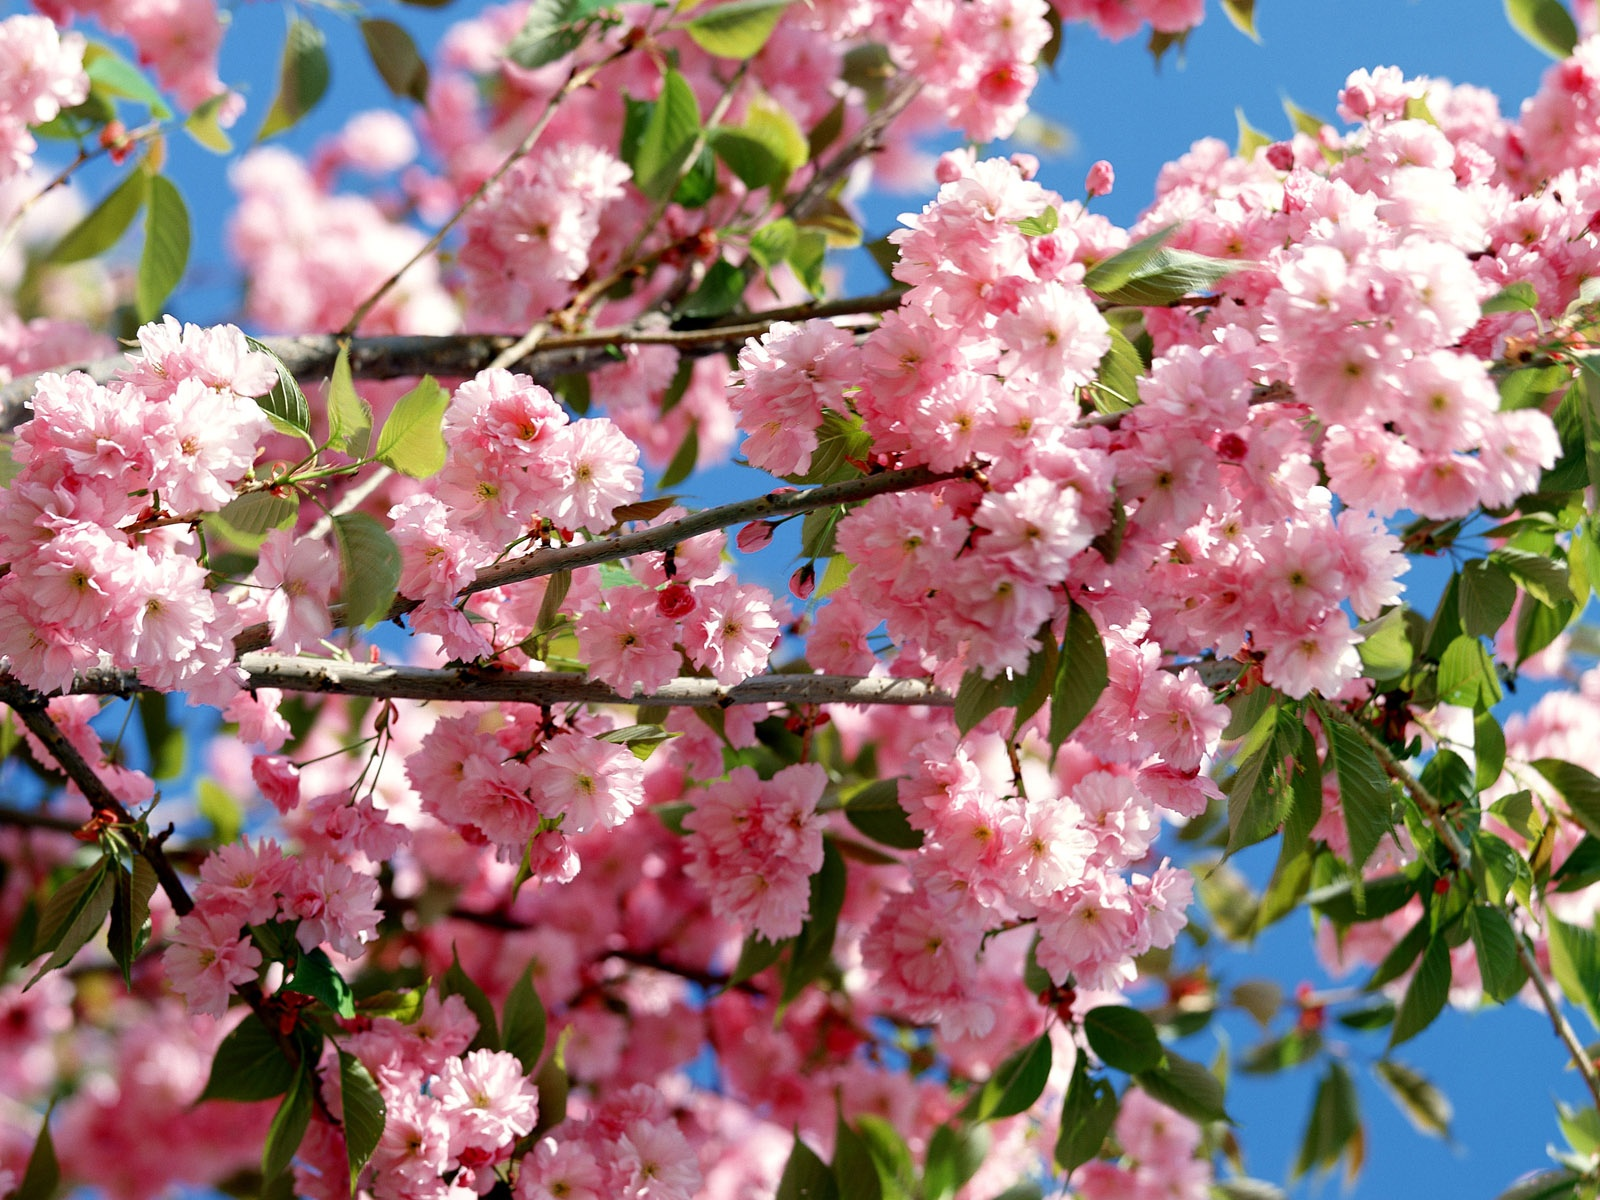 click to free download the wallpaper--Nature Landscape with Flowers, Pink Flowers in Bloom, the Blue Sky, a Fine Day